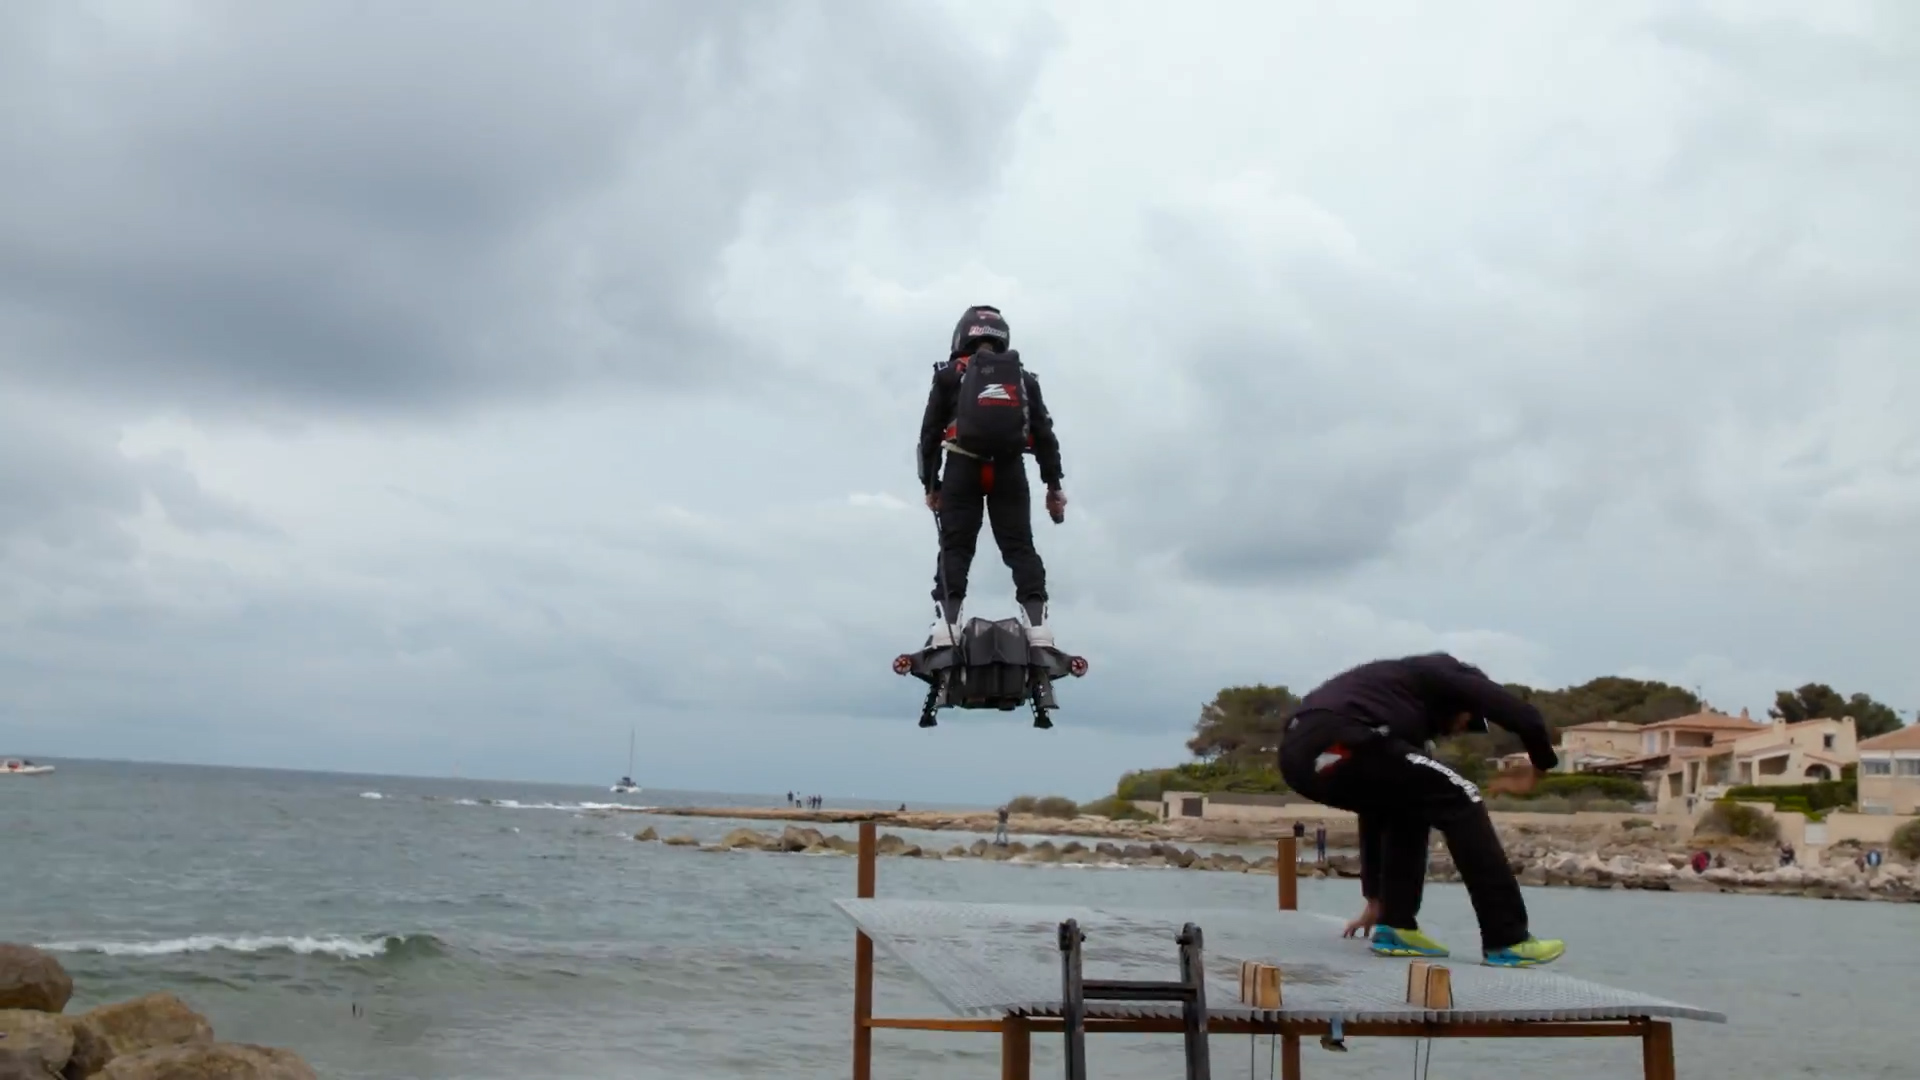 Video: Hoverboard flight breaks world record